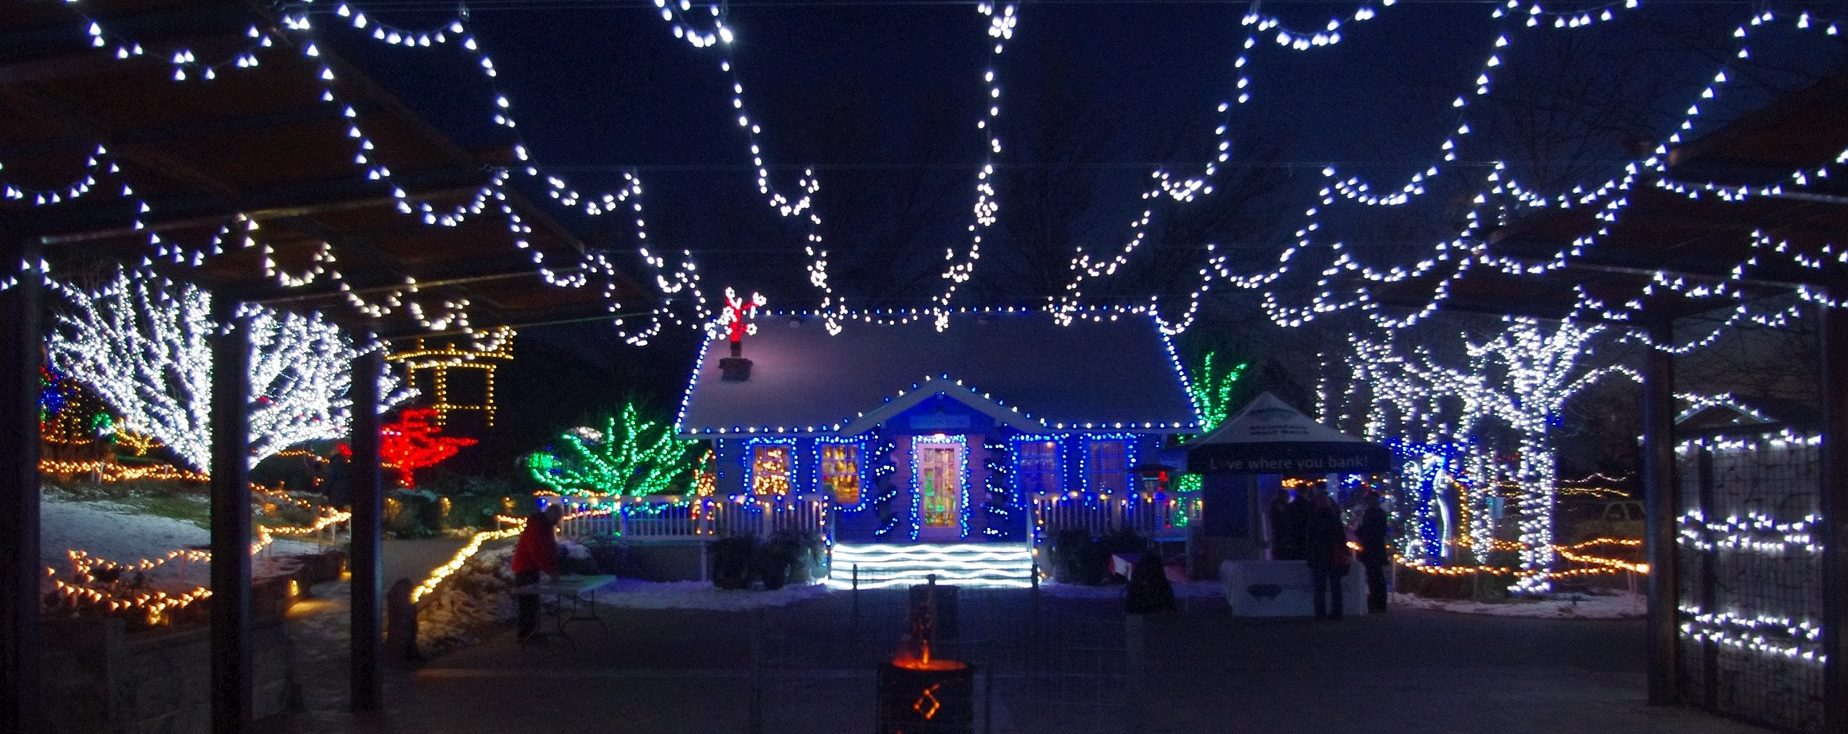 A photo of a house covered in Christmas lights